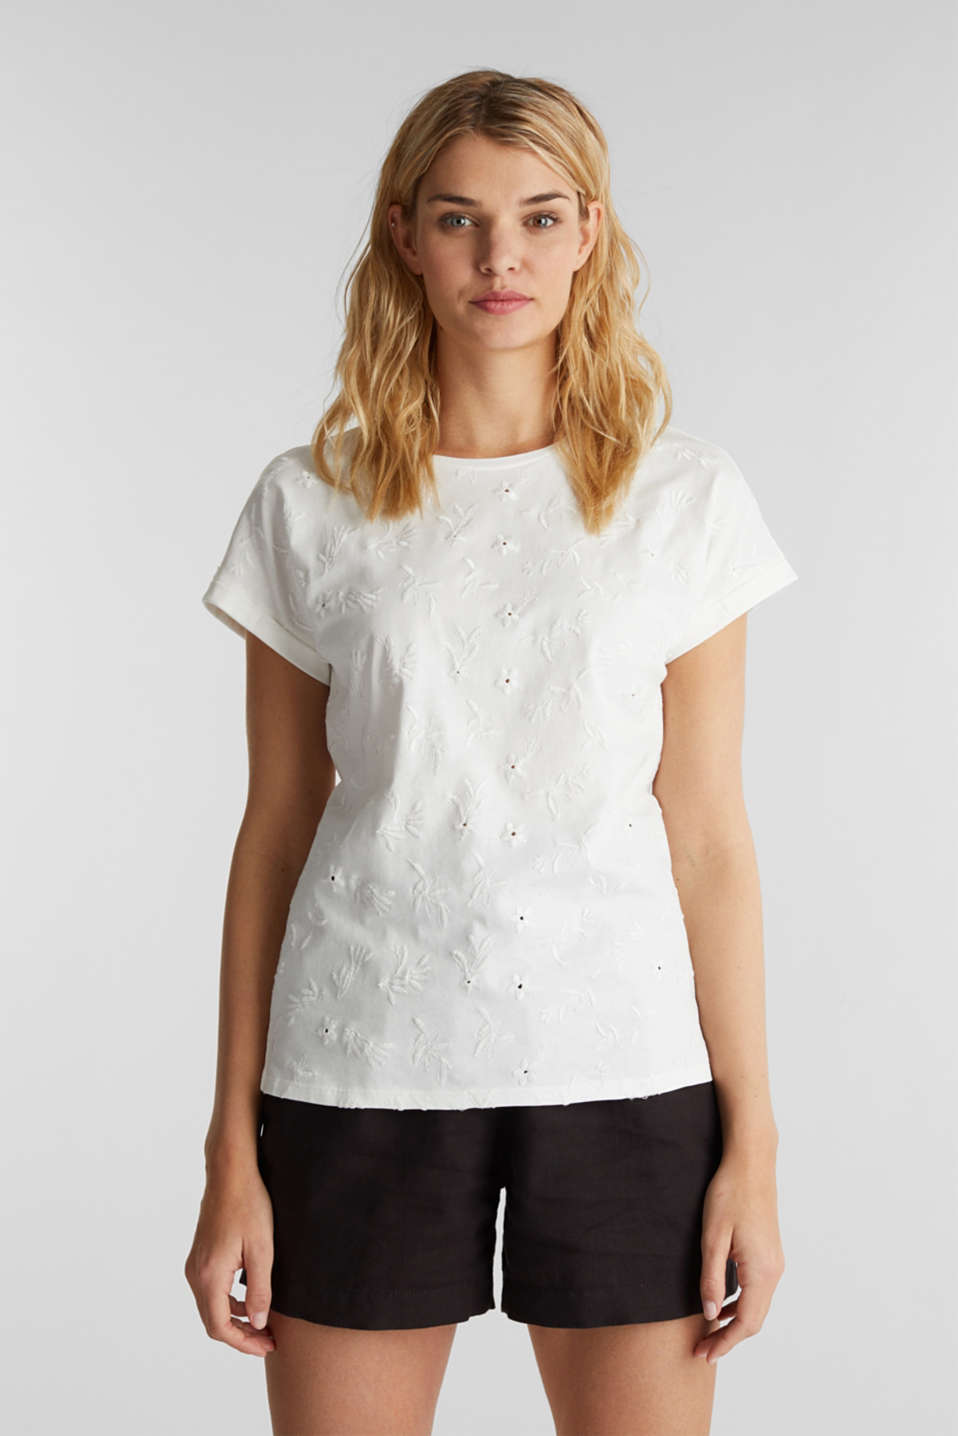 Esprit - T-shirt with tonal embroidery, 100% organic cotton